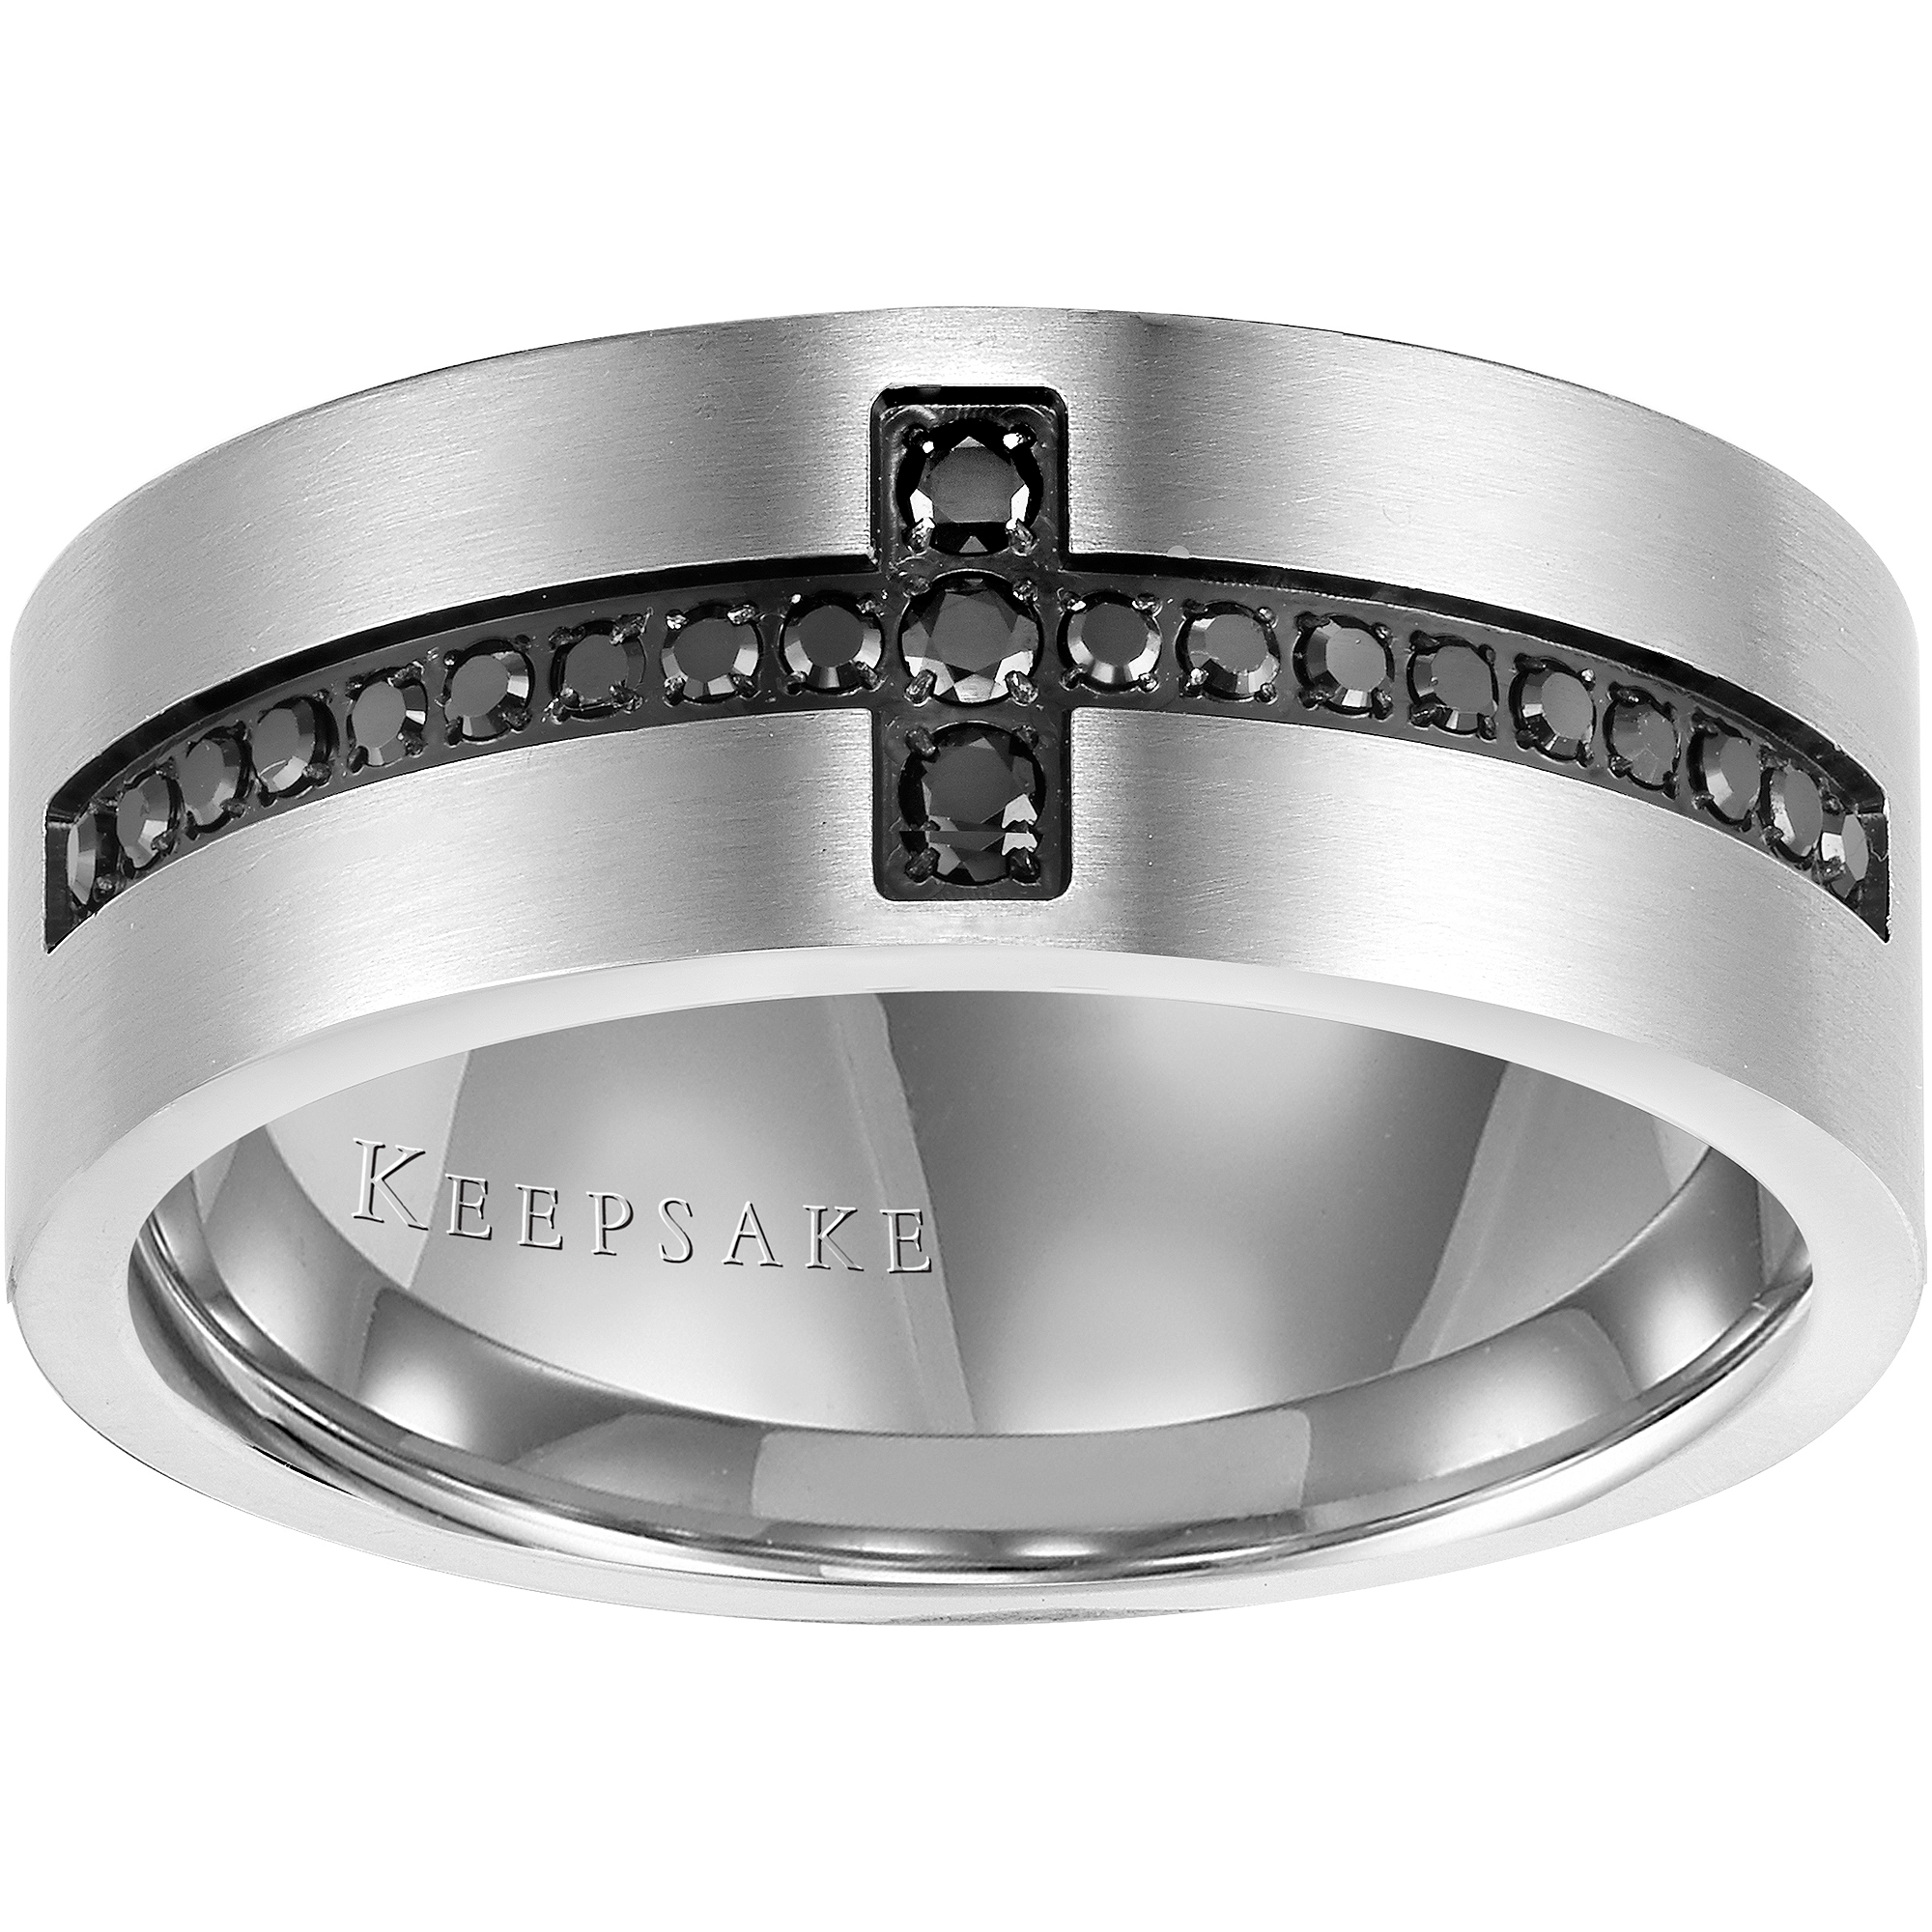 wedding promise ritani blog for platinum bands rings popular black and men metals women band